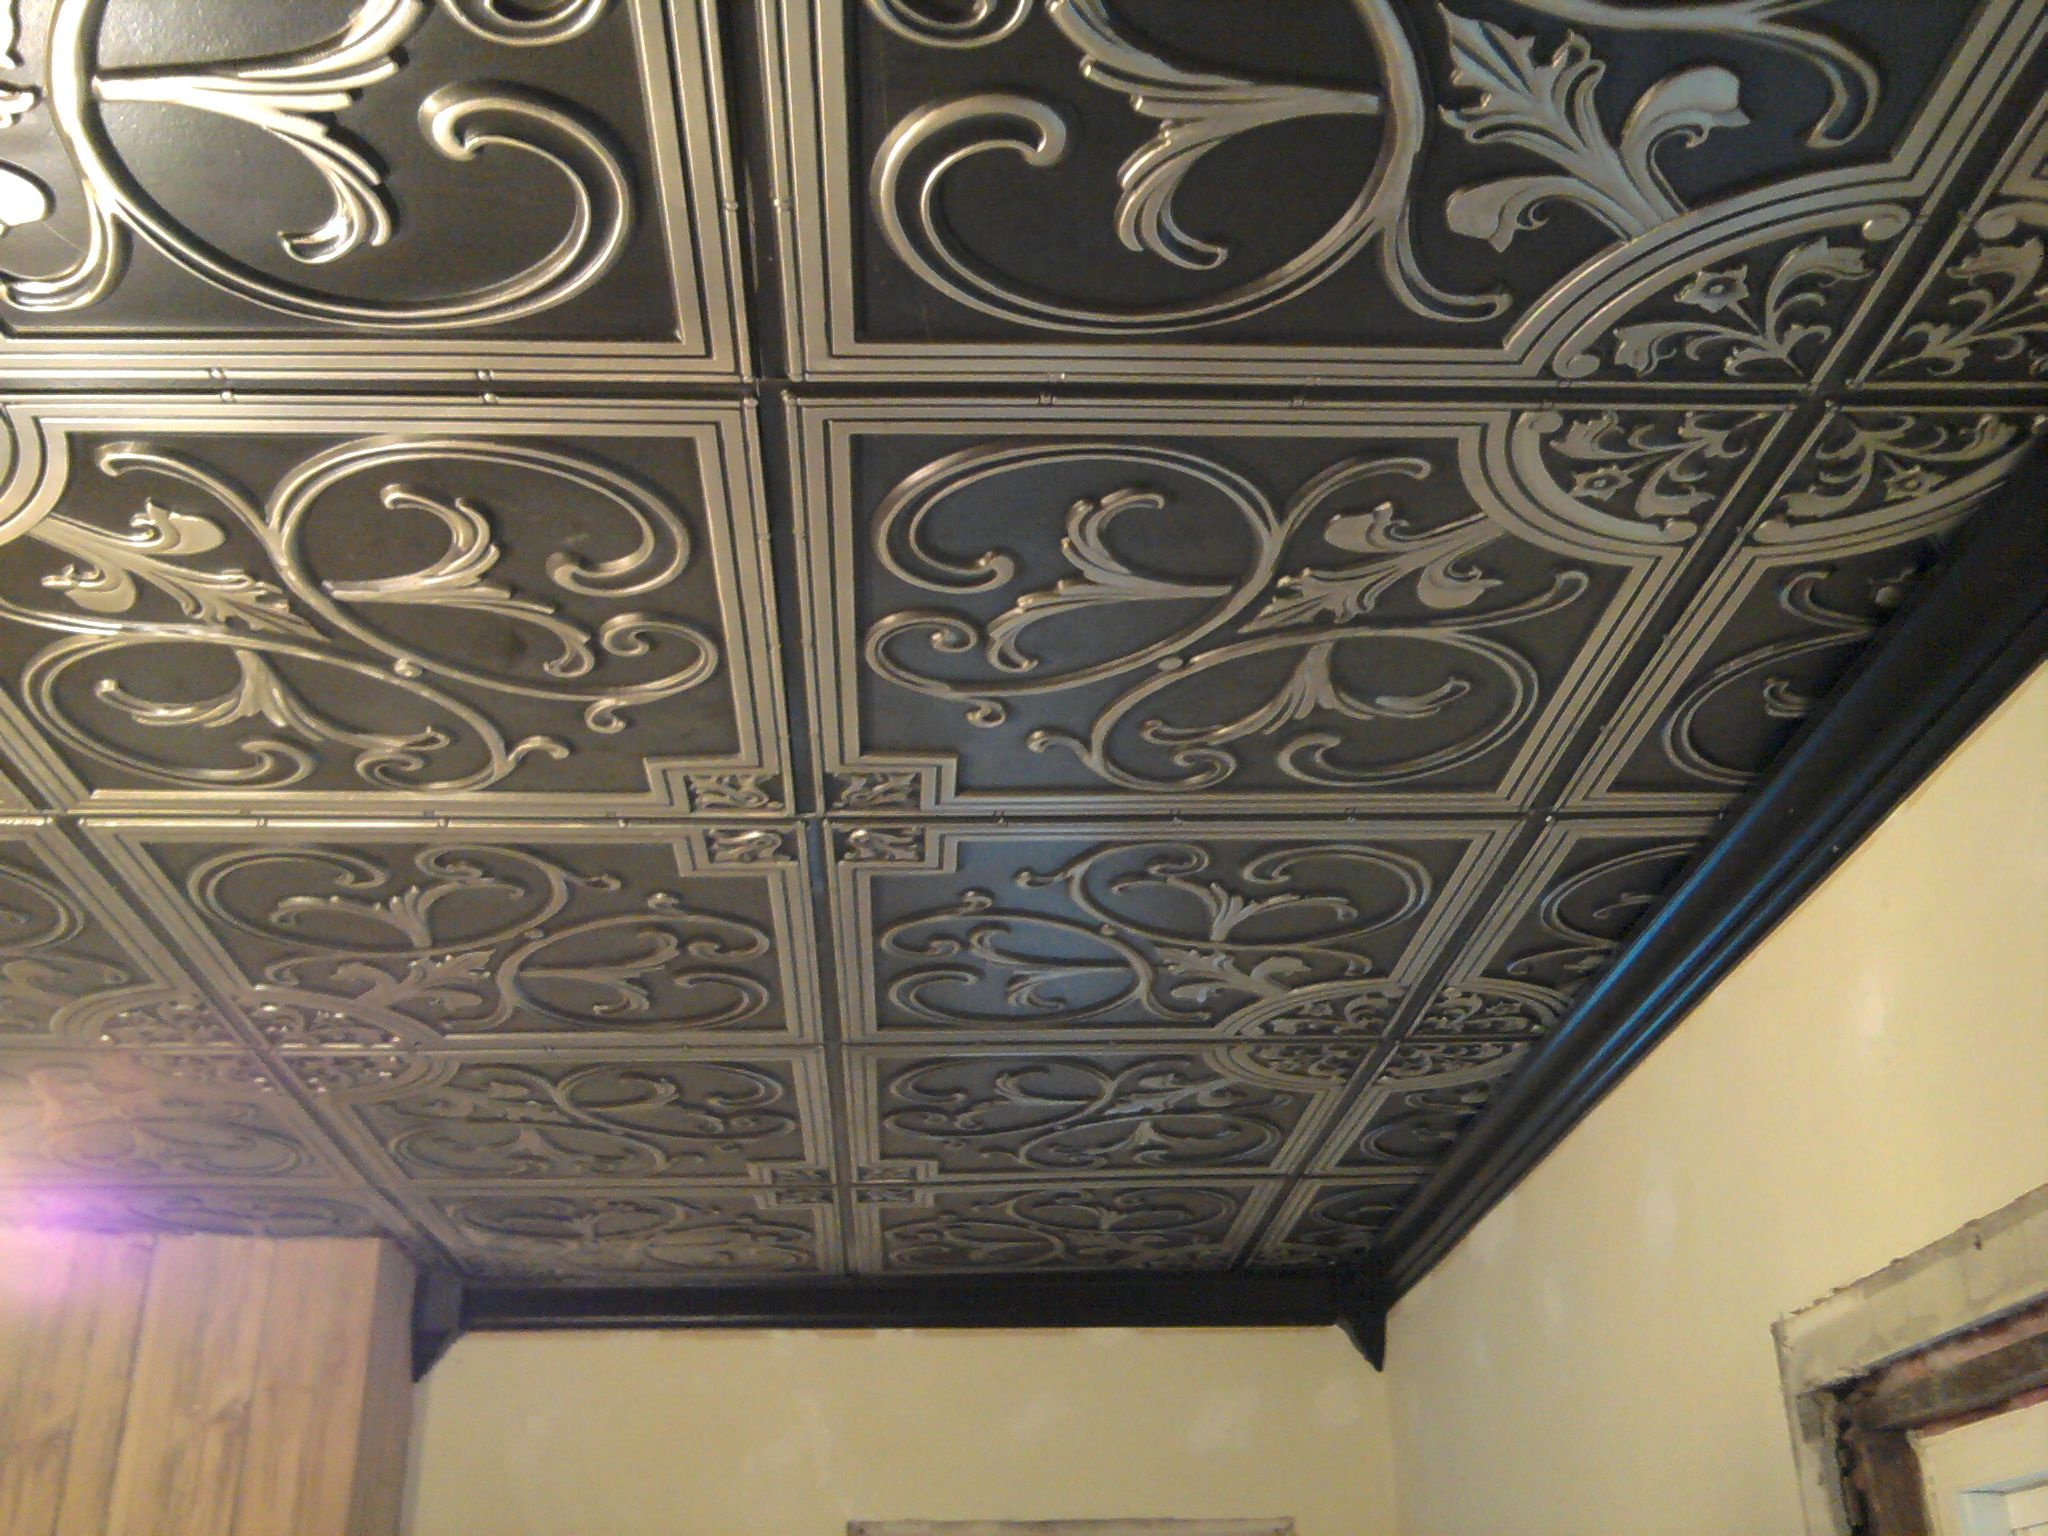 Amazing Decorative Plastic Ceiling Tiles Gallery Best Idea Home Throughout Dimensions 2048 X 1536 Tin Look Before Beginning Your Re